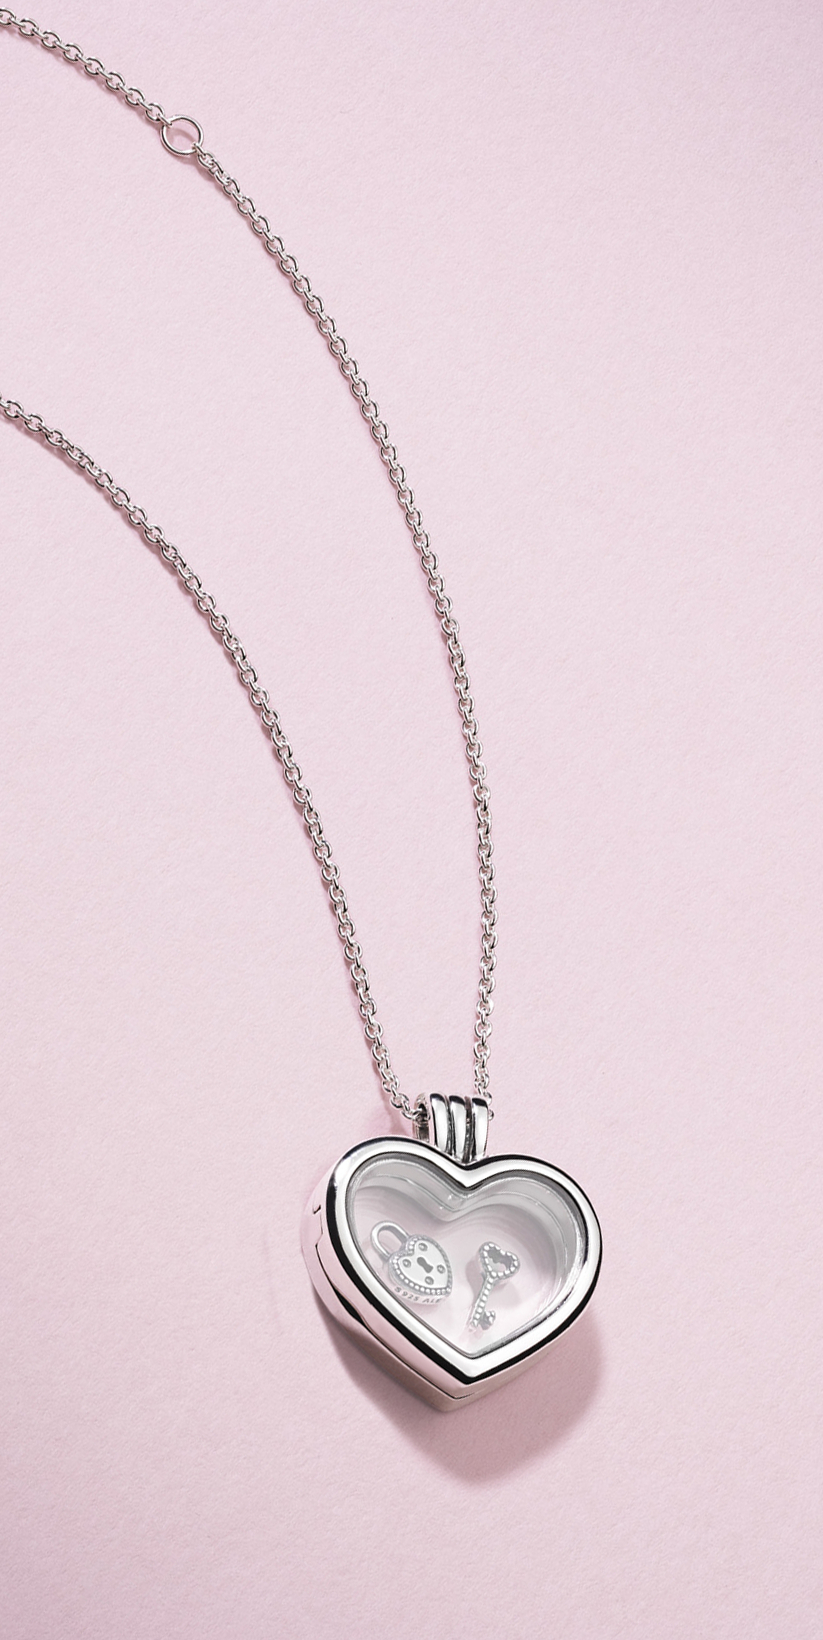 Valentine's Day Jewellery | Pandora Lockets | Pandora Necklace Pertaining To Most Recent Pandora Lockets Logo Dangle Charm Necklaces (Gallery 3 of 25)